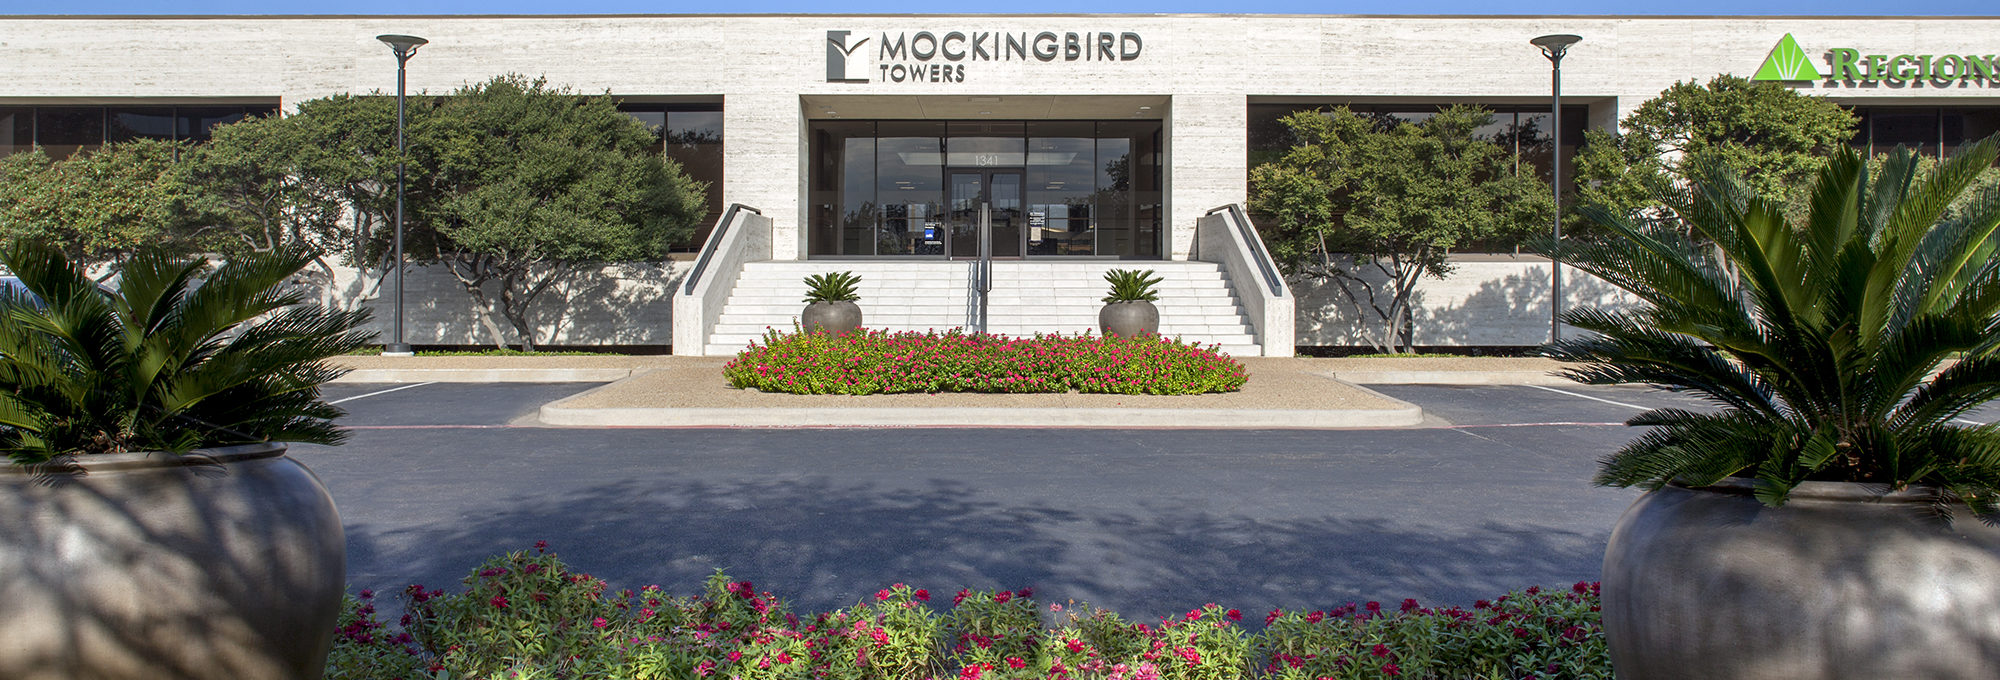 Mockingbird Towers